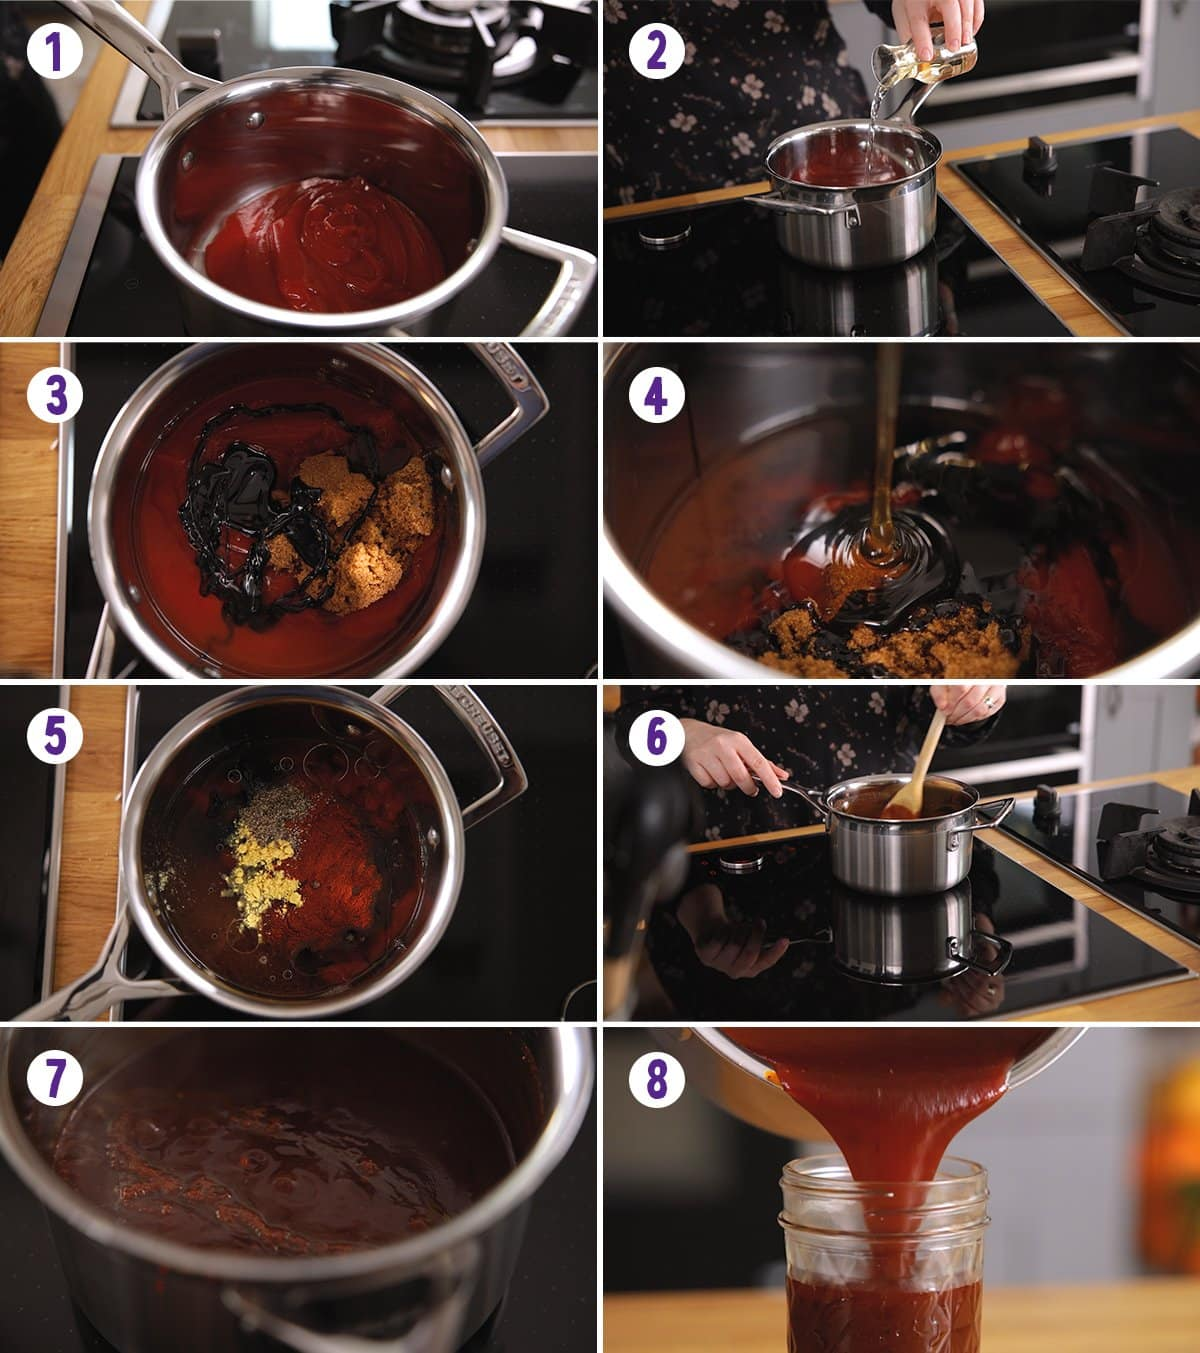 8 image collage showing how to make bbq sauce